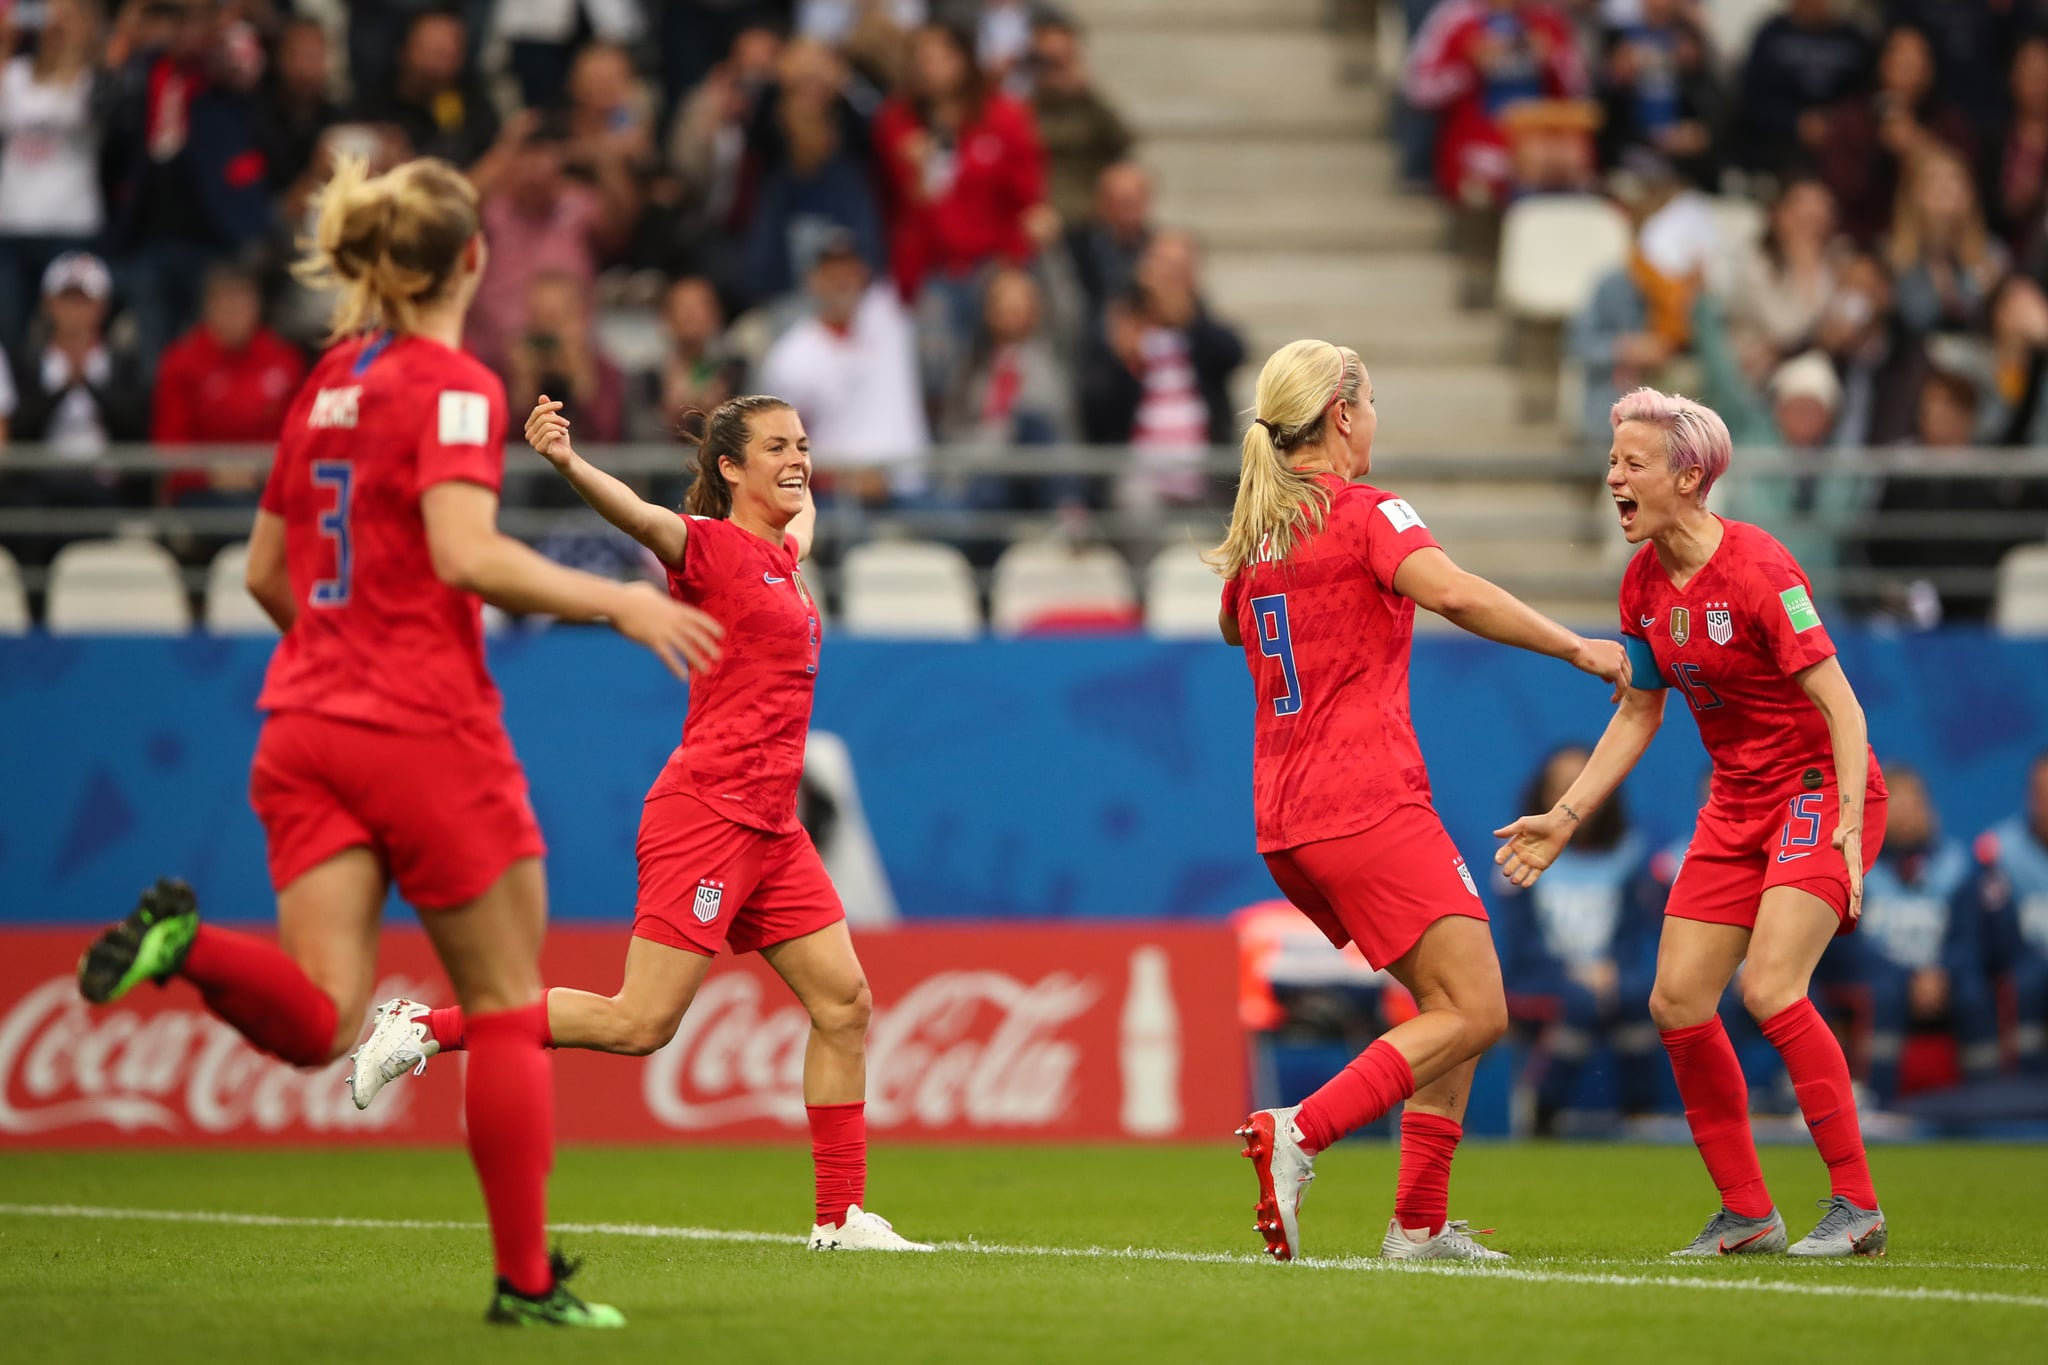 REIMS, FRANCE - JUNE 11: Lindsey Horan of USA celebrates after scoring a goal to make it 3-0 during the 2019 FIFA Women's World Cup France group F match between USA and Thailand at Stade Auguste Delaune on June 11, 2019 in Reims, France. (Photo by Molly Darlington - AMA/Getty Images)